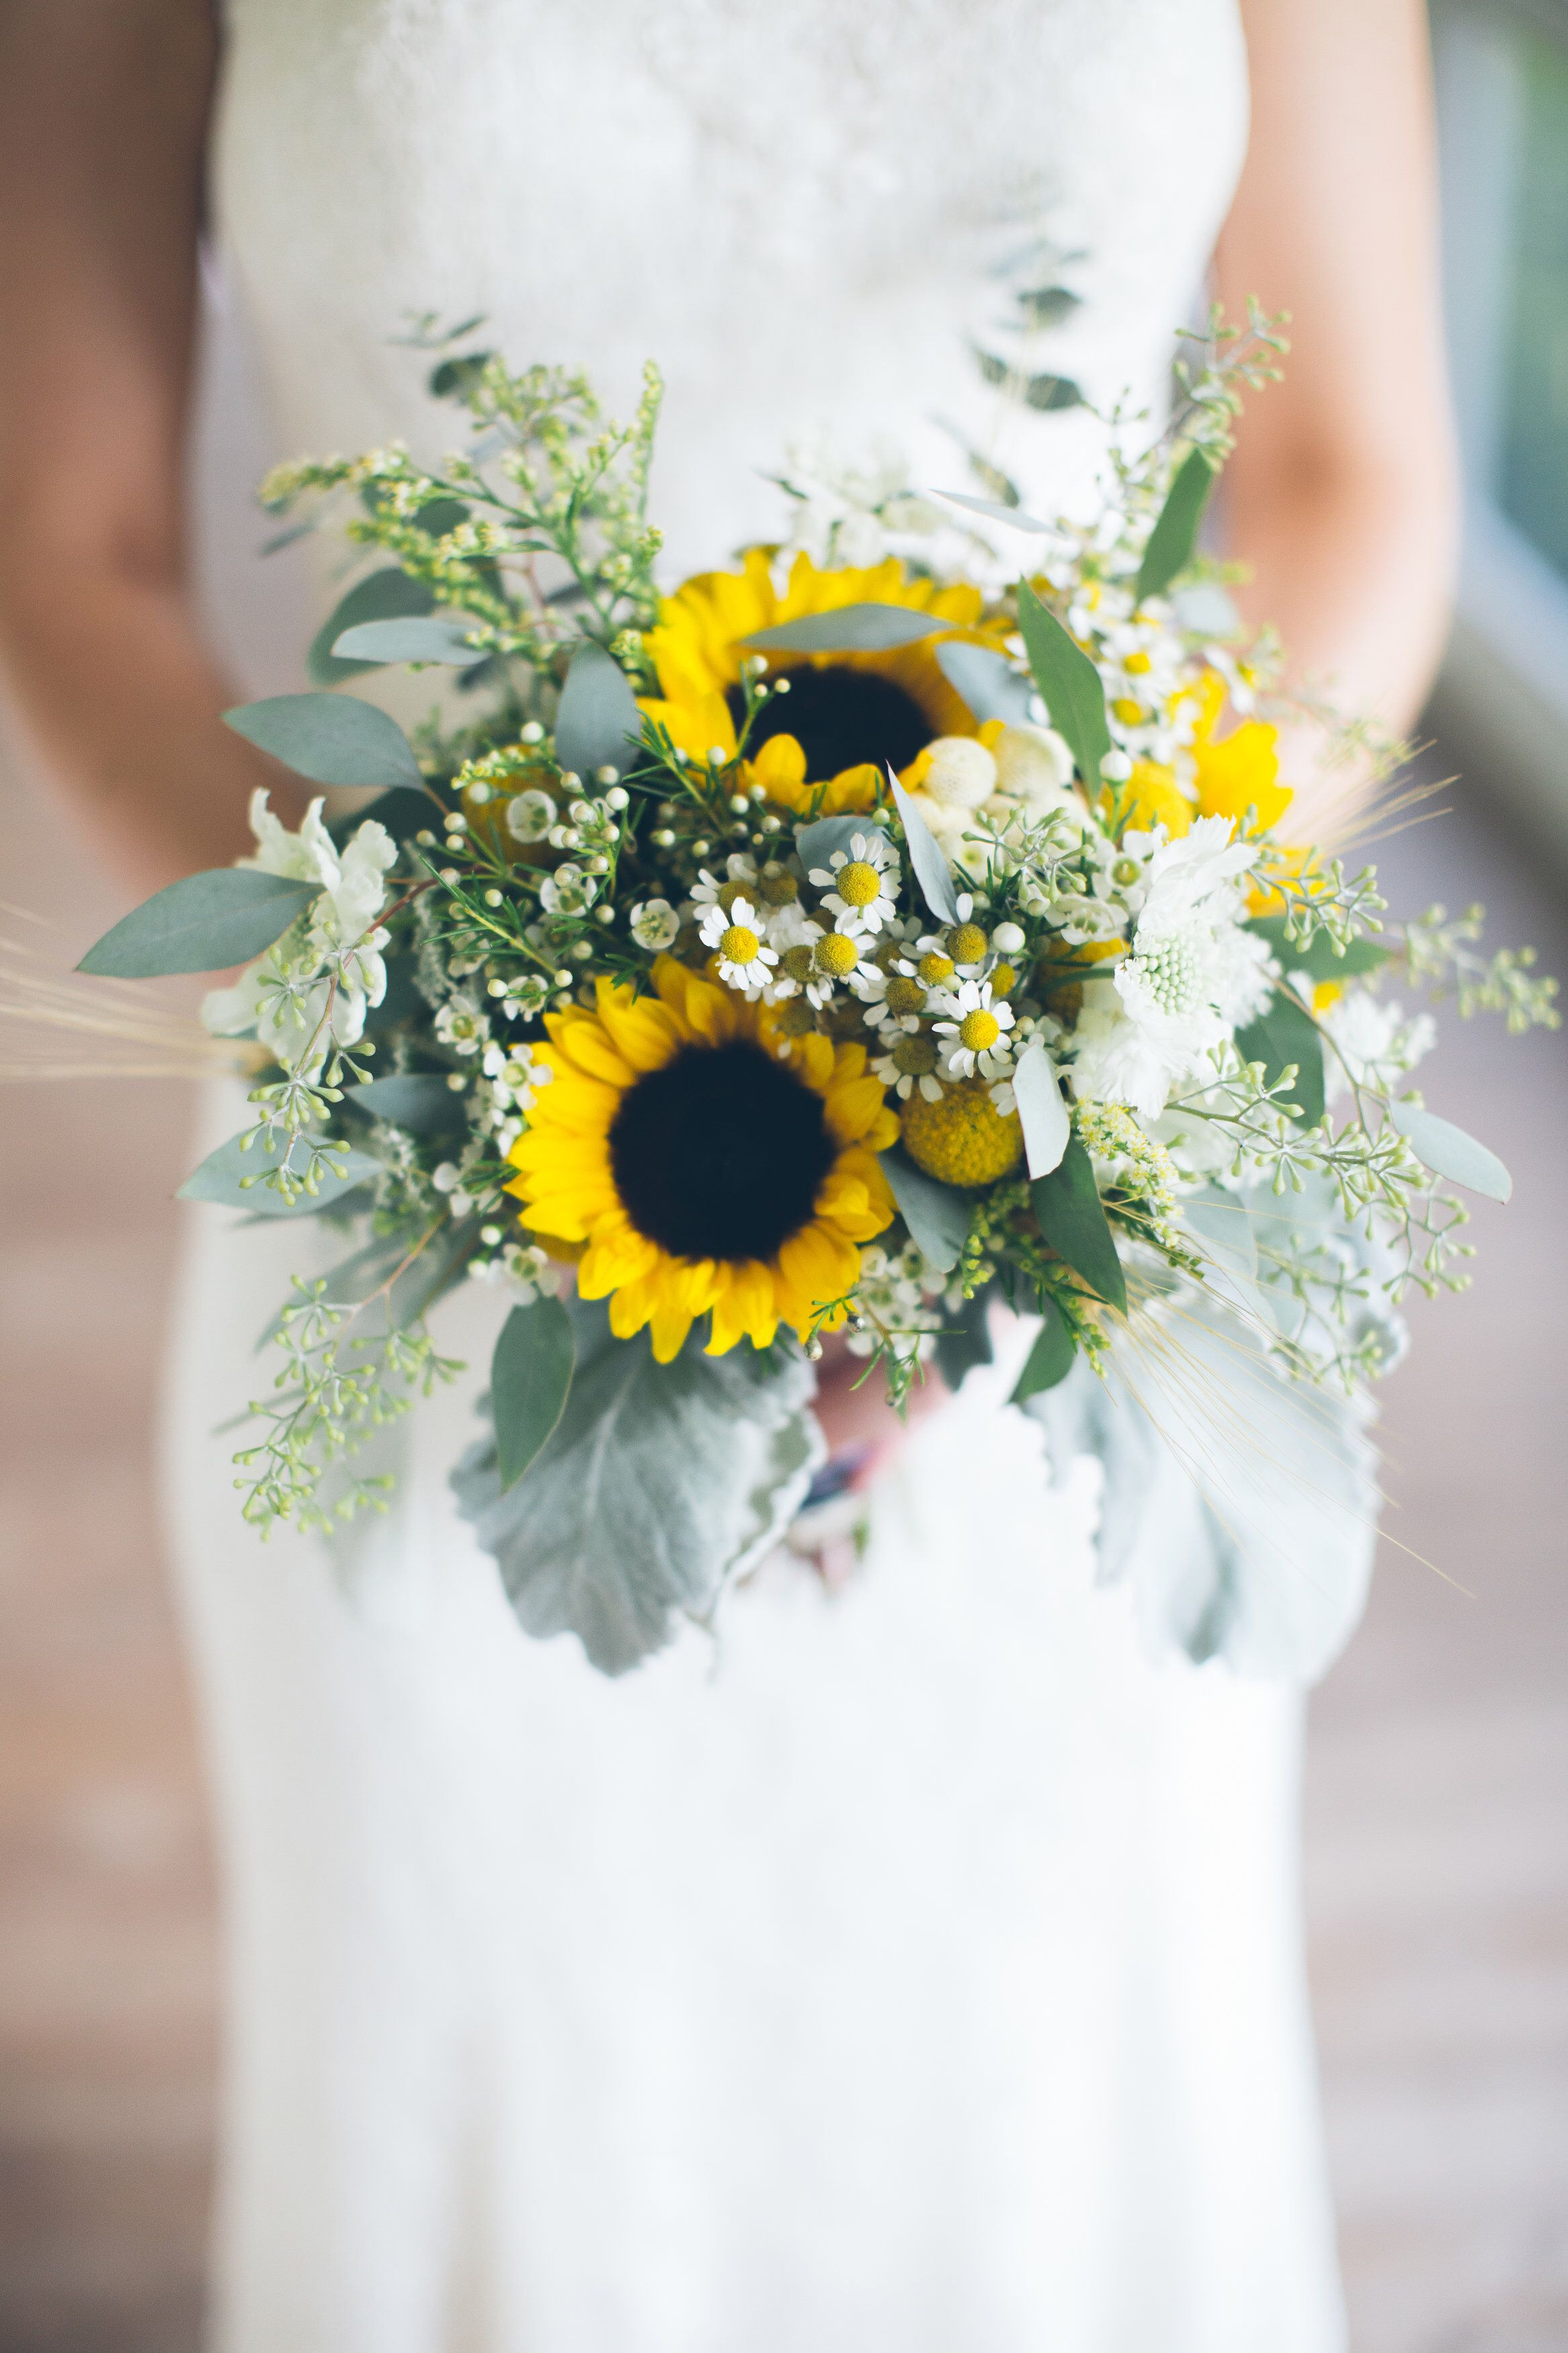 Bridal bouquets Sunflower wedding Sunflower and wheat Dusty miller fever few wax